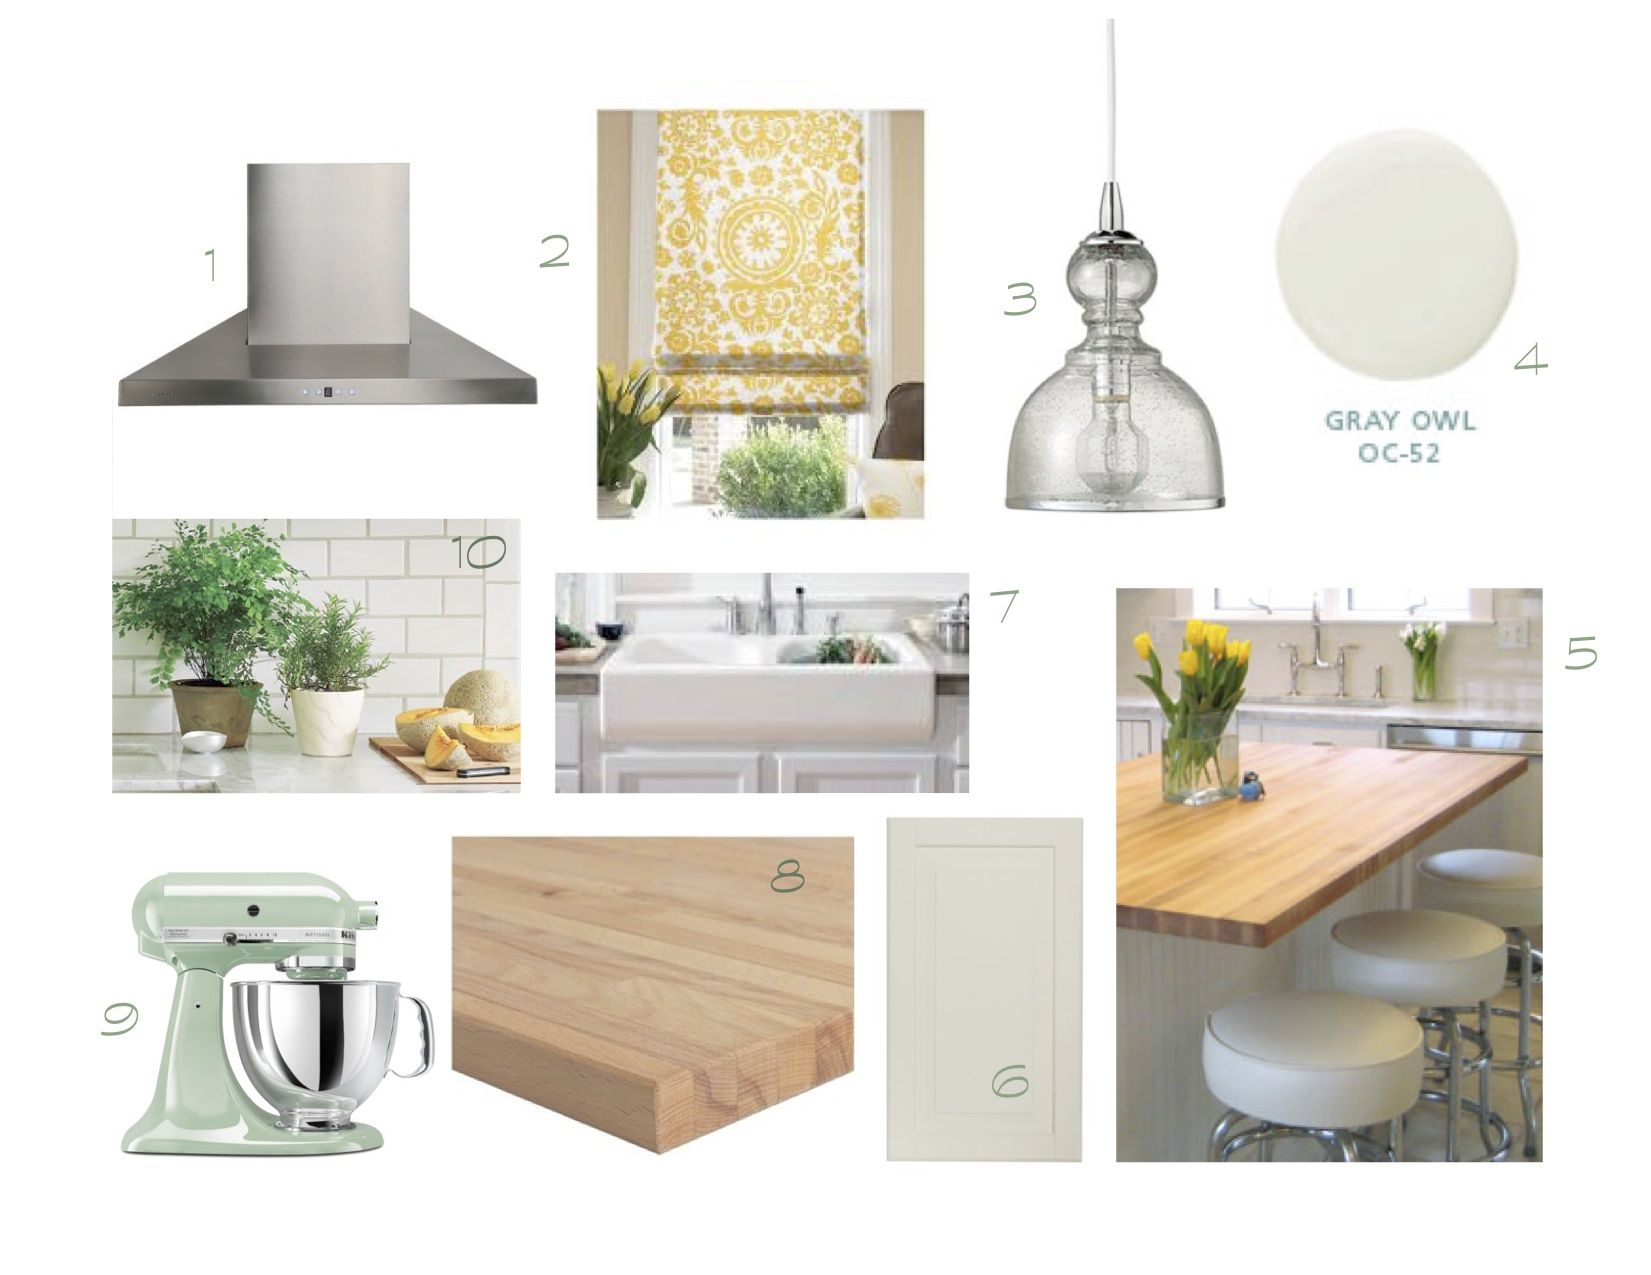 White, Cheerful Kitchen Kitchen Mood Board   White Cabinets U0026 Tile, Butcher  Block Counters